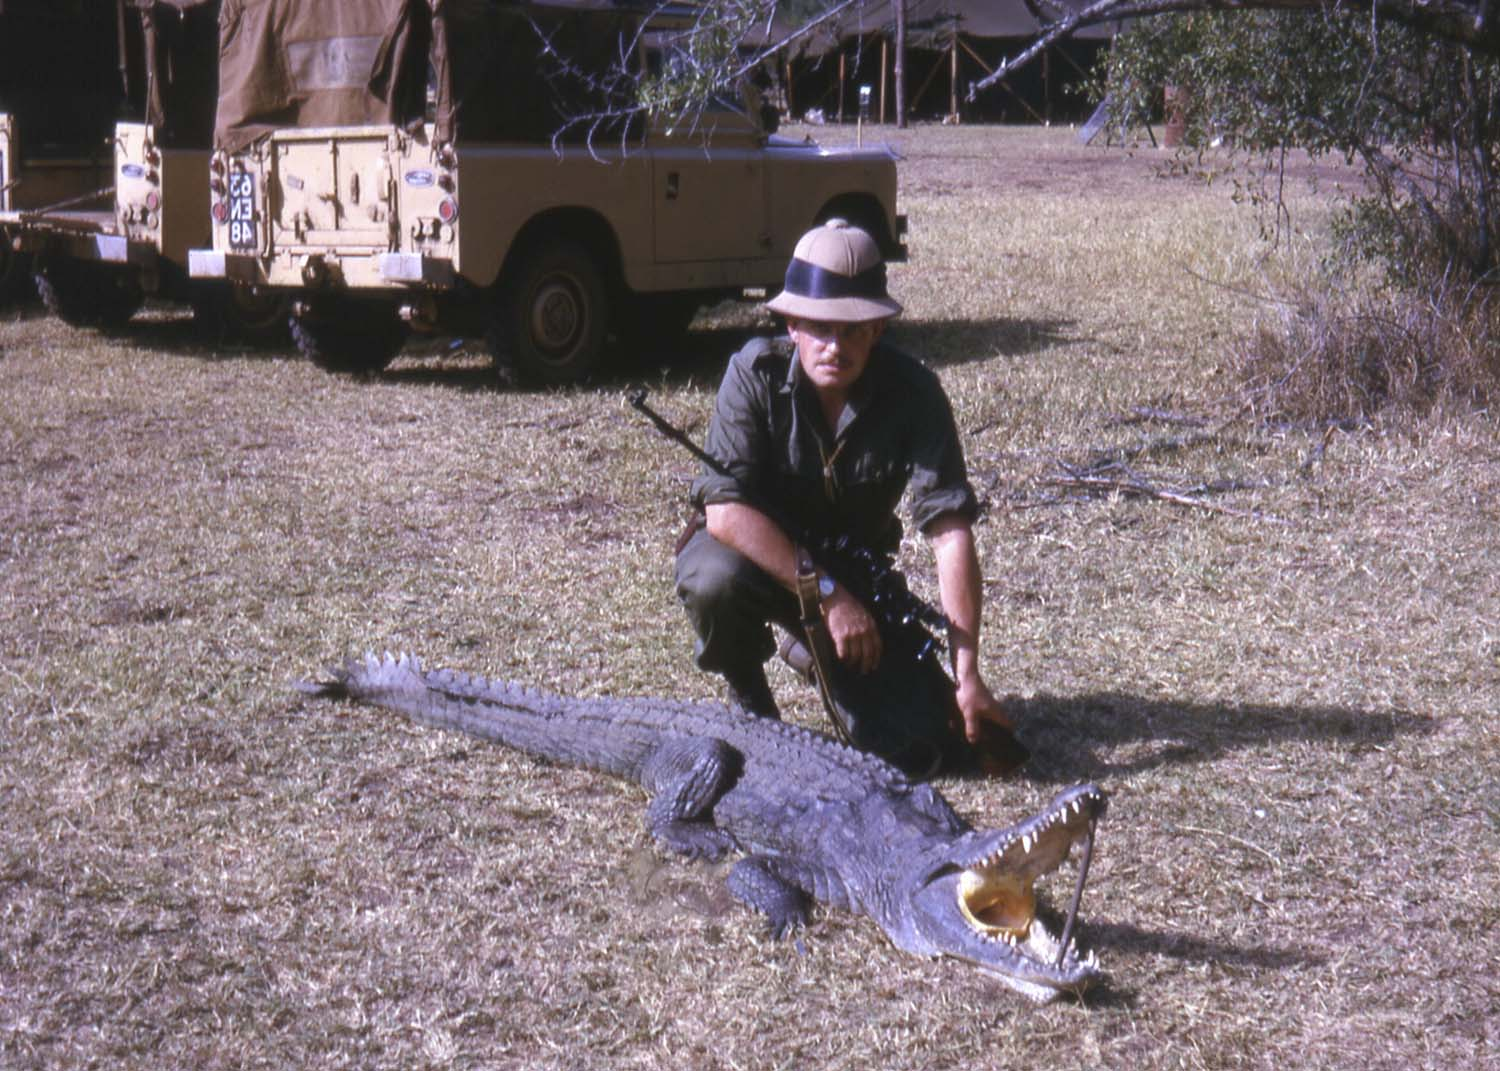 jbs and the croc that tried to eat him Ethiopia 1966